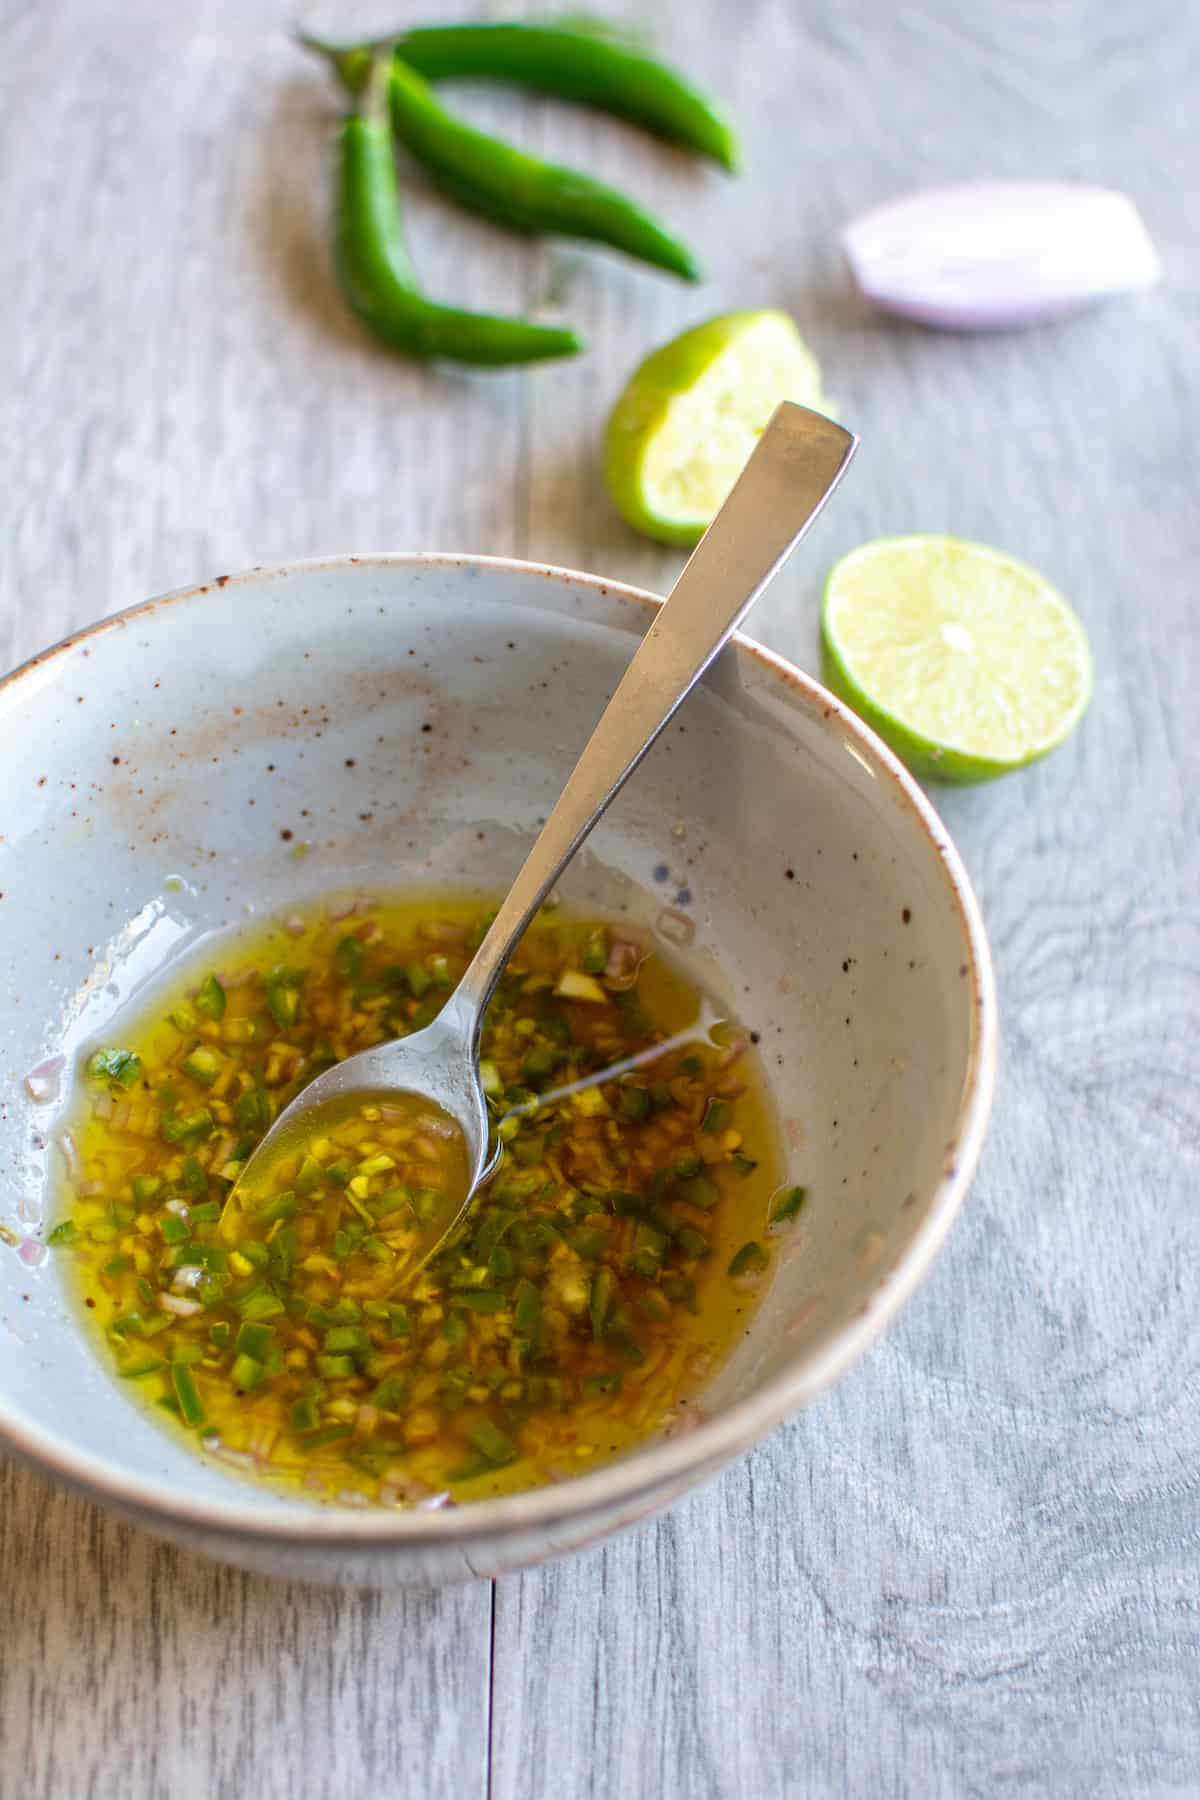 A ceramic bowl with serrano pepper dressing in it and a silver spoon sticking out of one side. Lime halves and serrano peppers behind it.